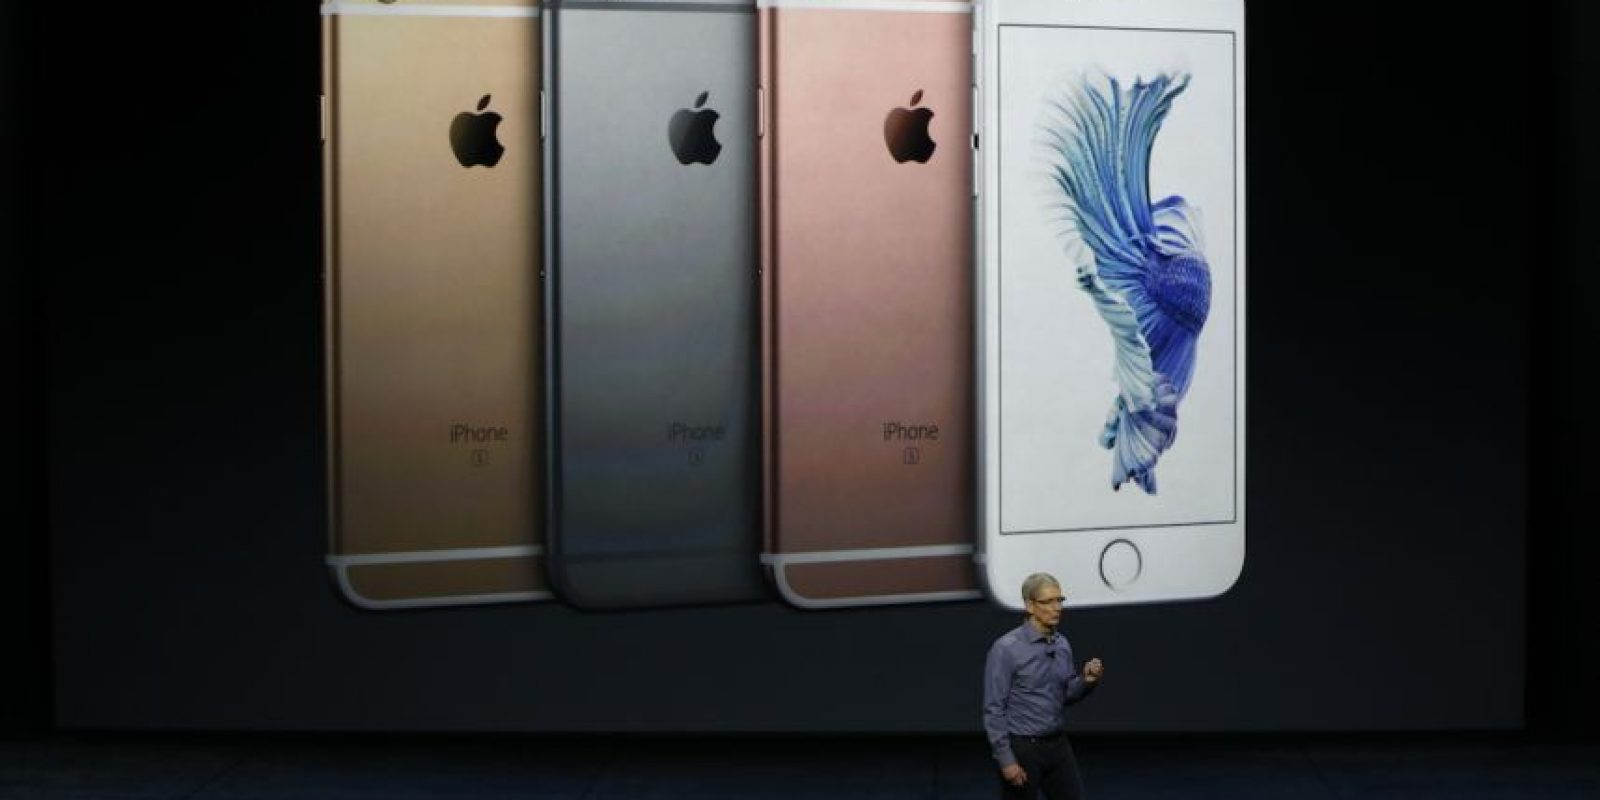 Colores: Plata, dorado, gris espacial, oro rosado. Foto: Apple